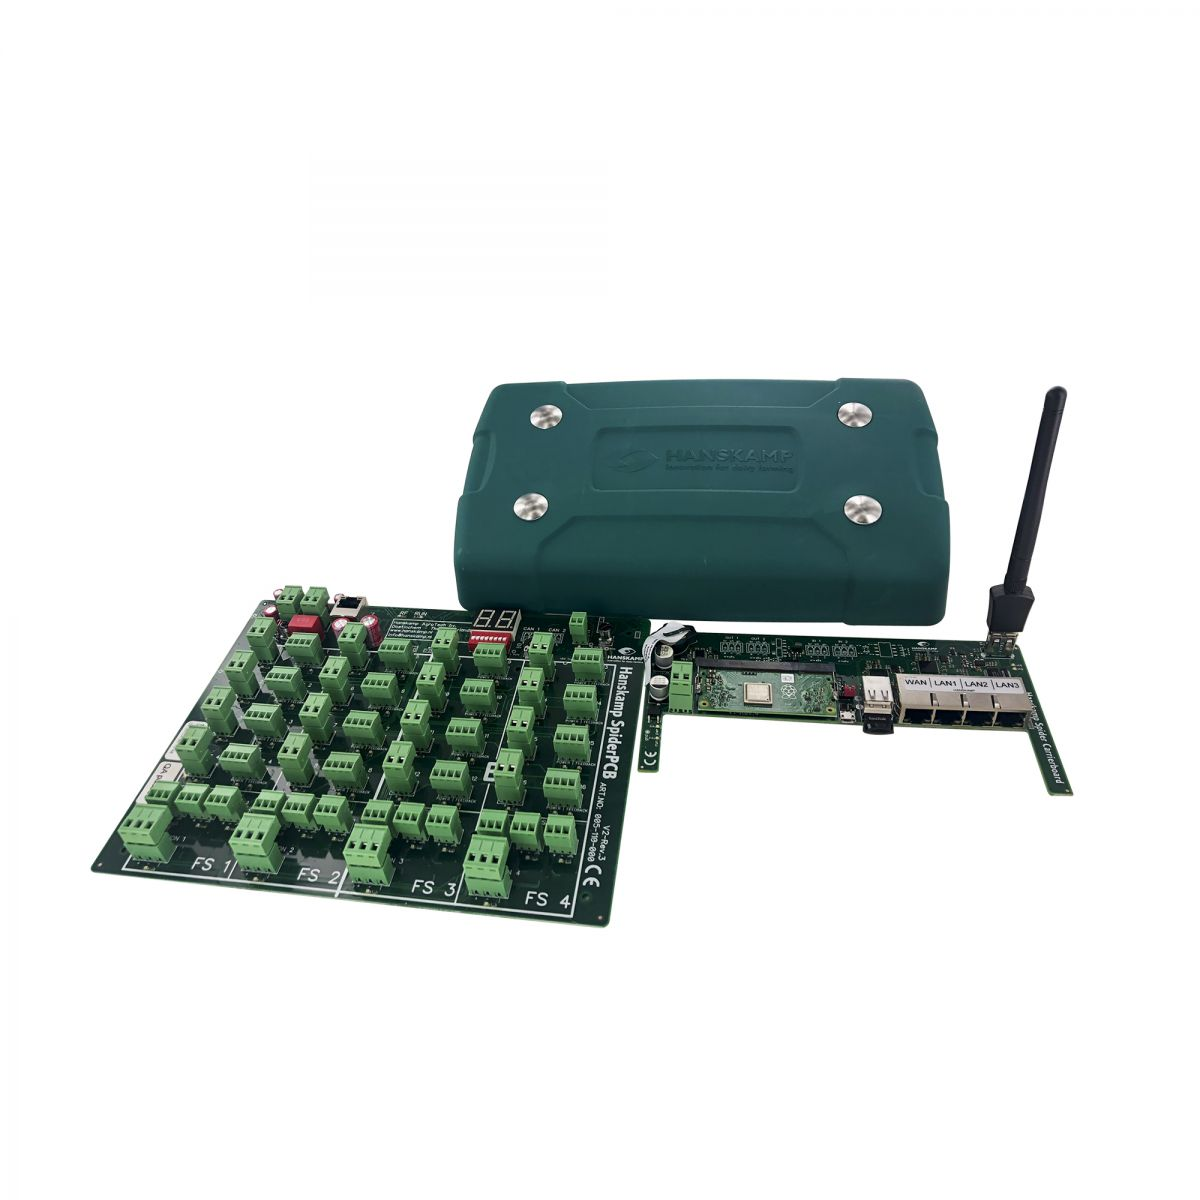 new spare part set consists of antenna spiderpcb and carrierboard custom pricing